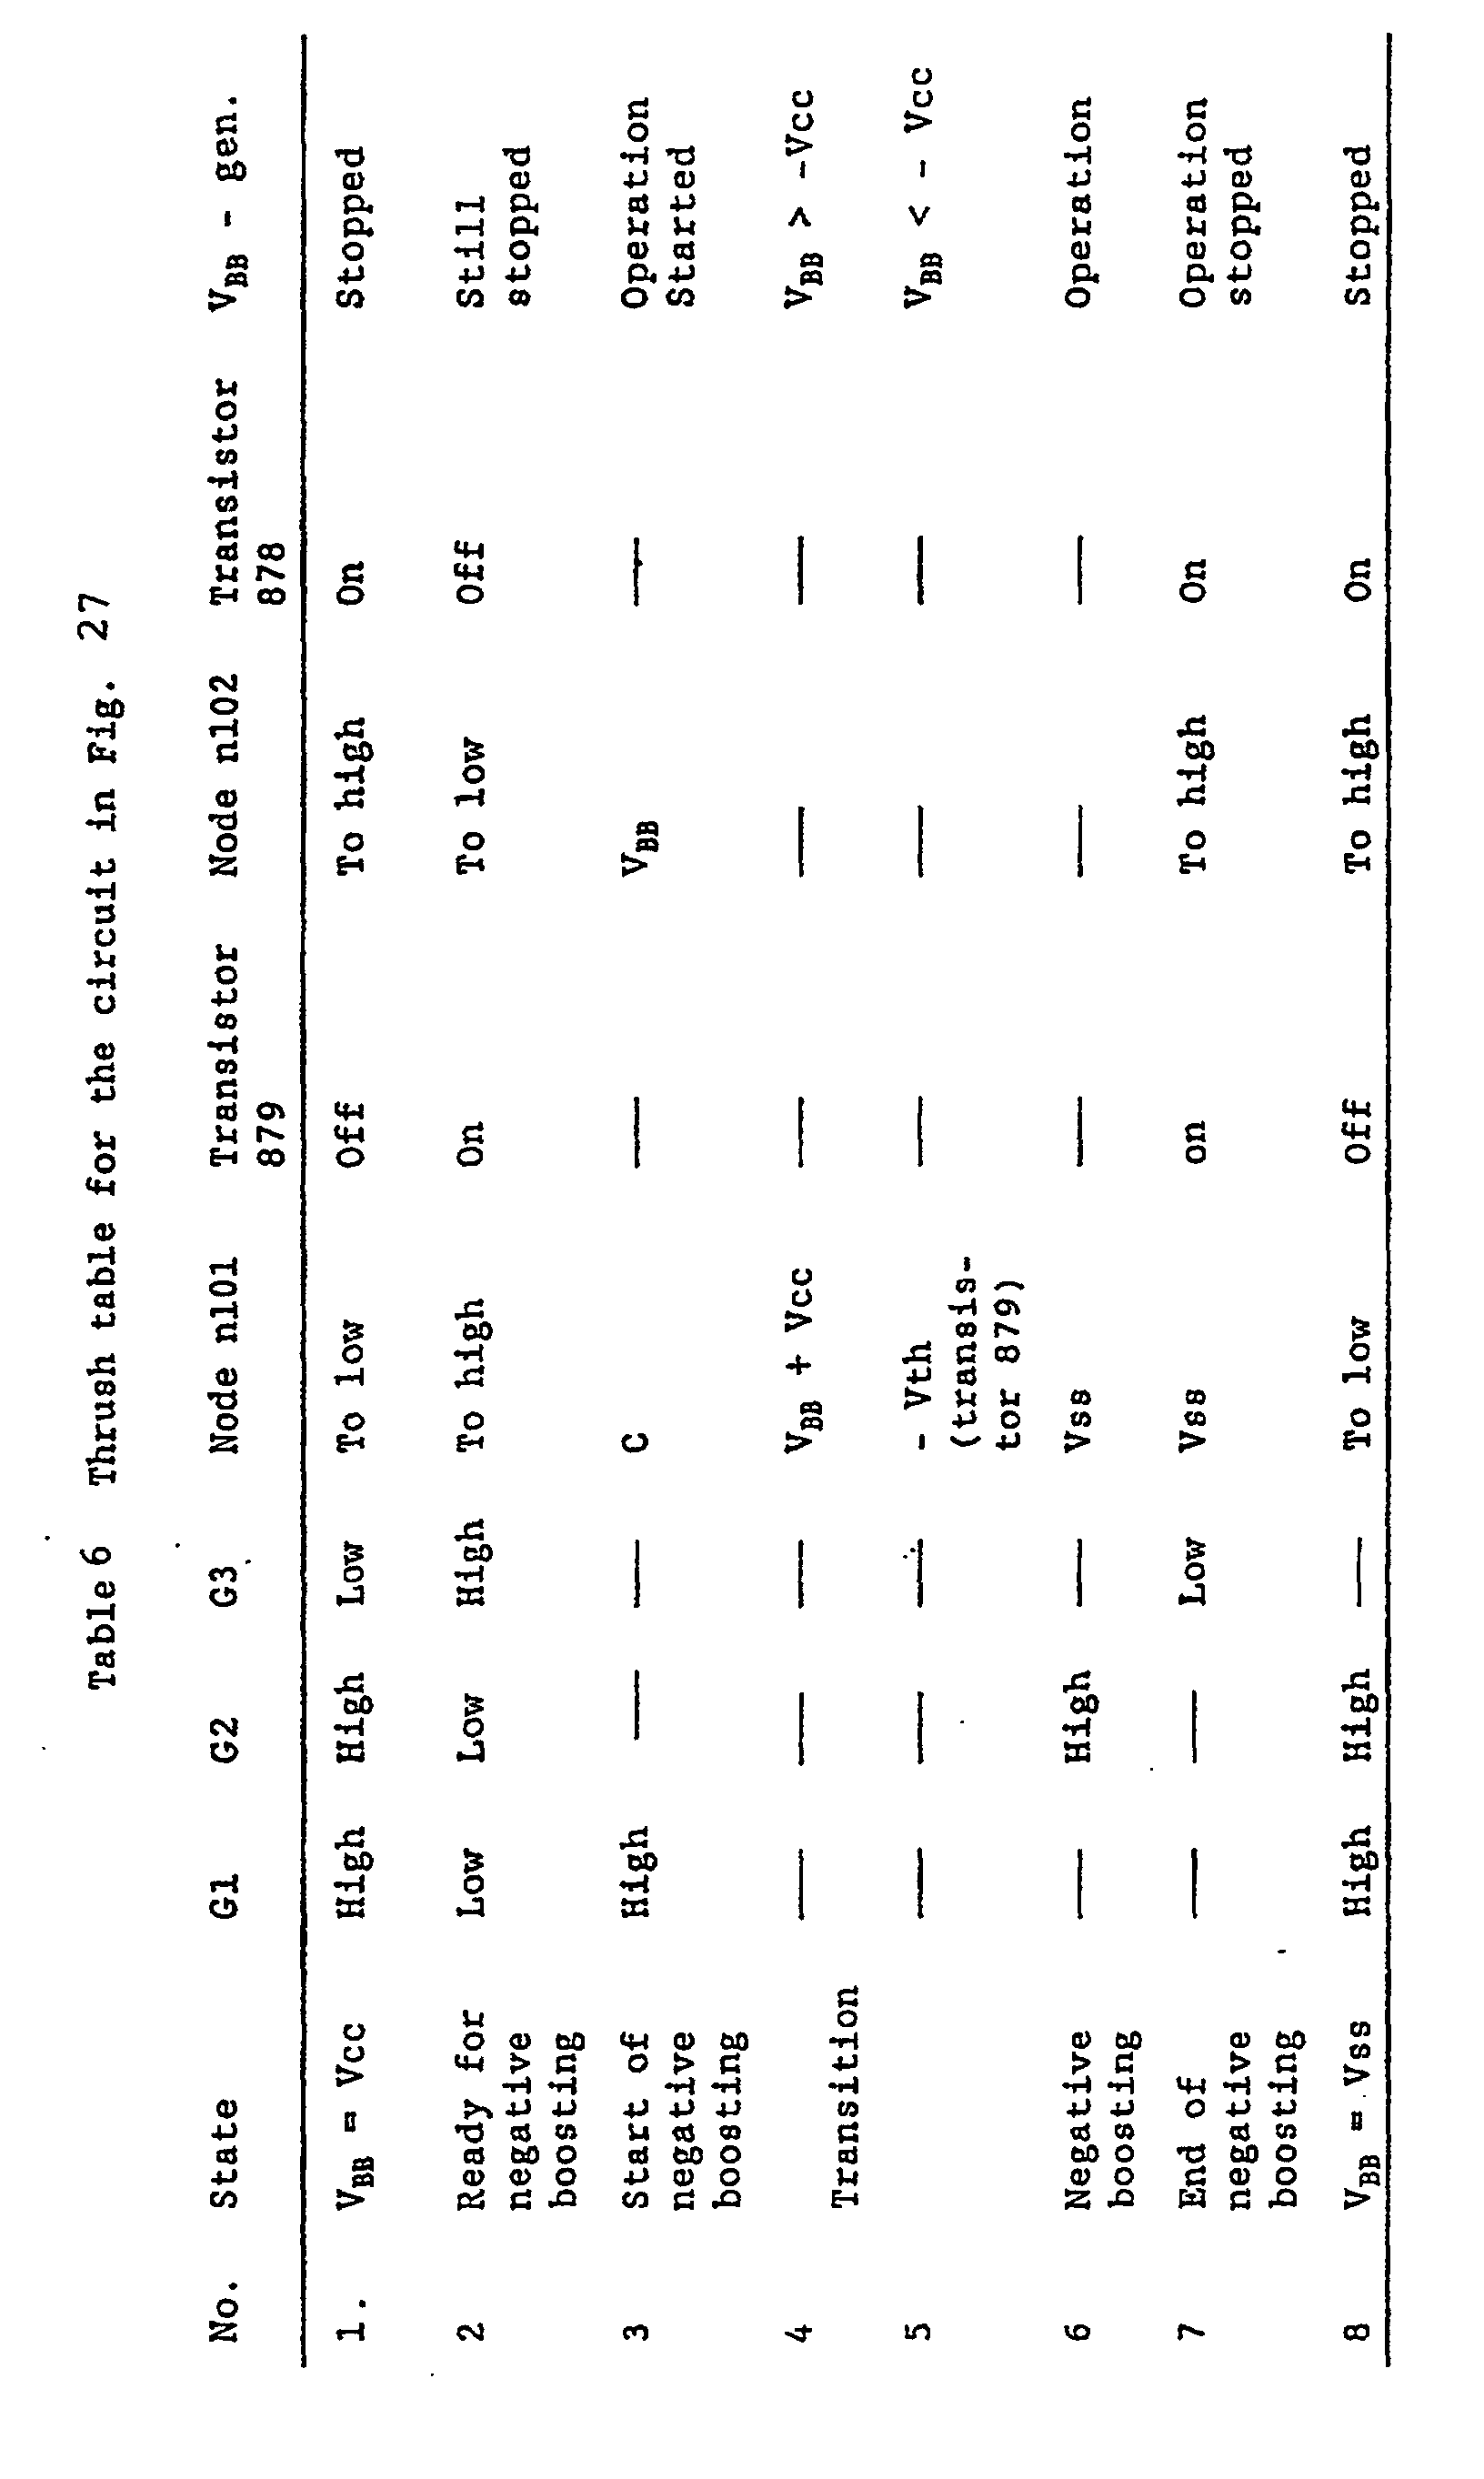 ep0961290b1 - flash memory with improved erasability and its circuitry